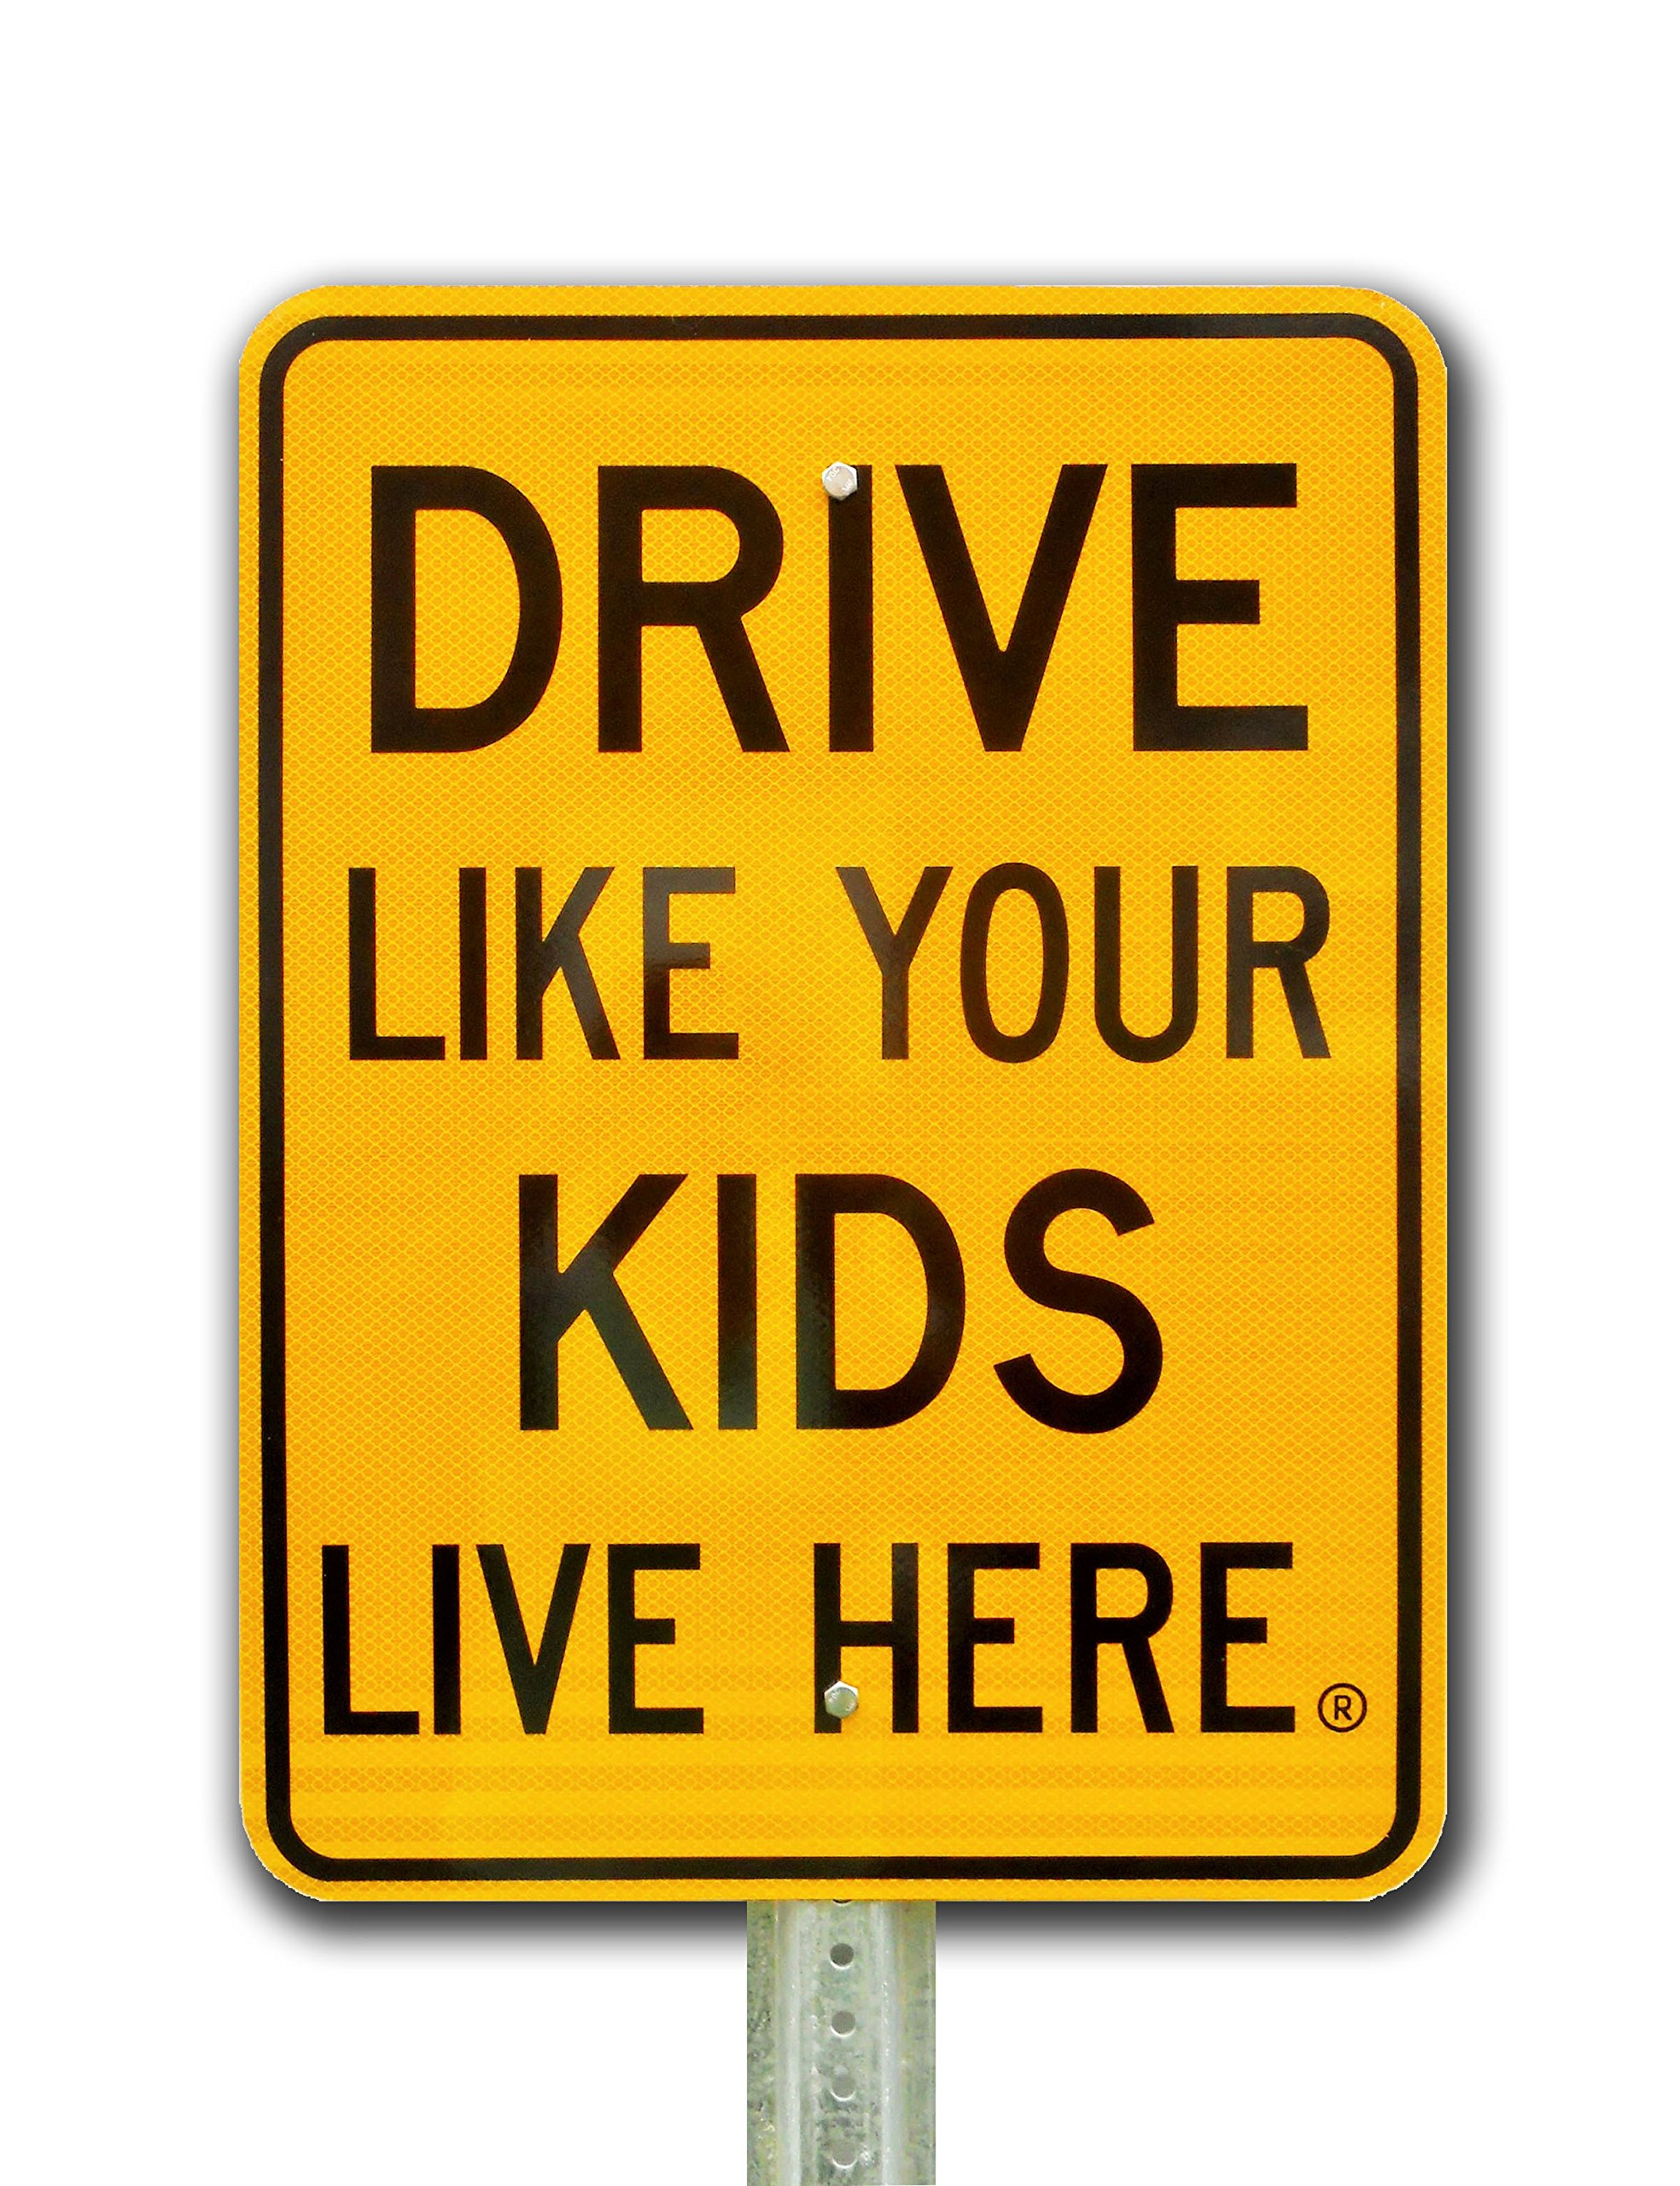 Drive Like Your Kids Live Here Reflective Traffic Sign, Slow/Children At Play Reminder 18x24 Inches